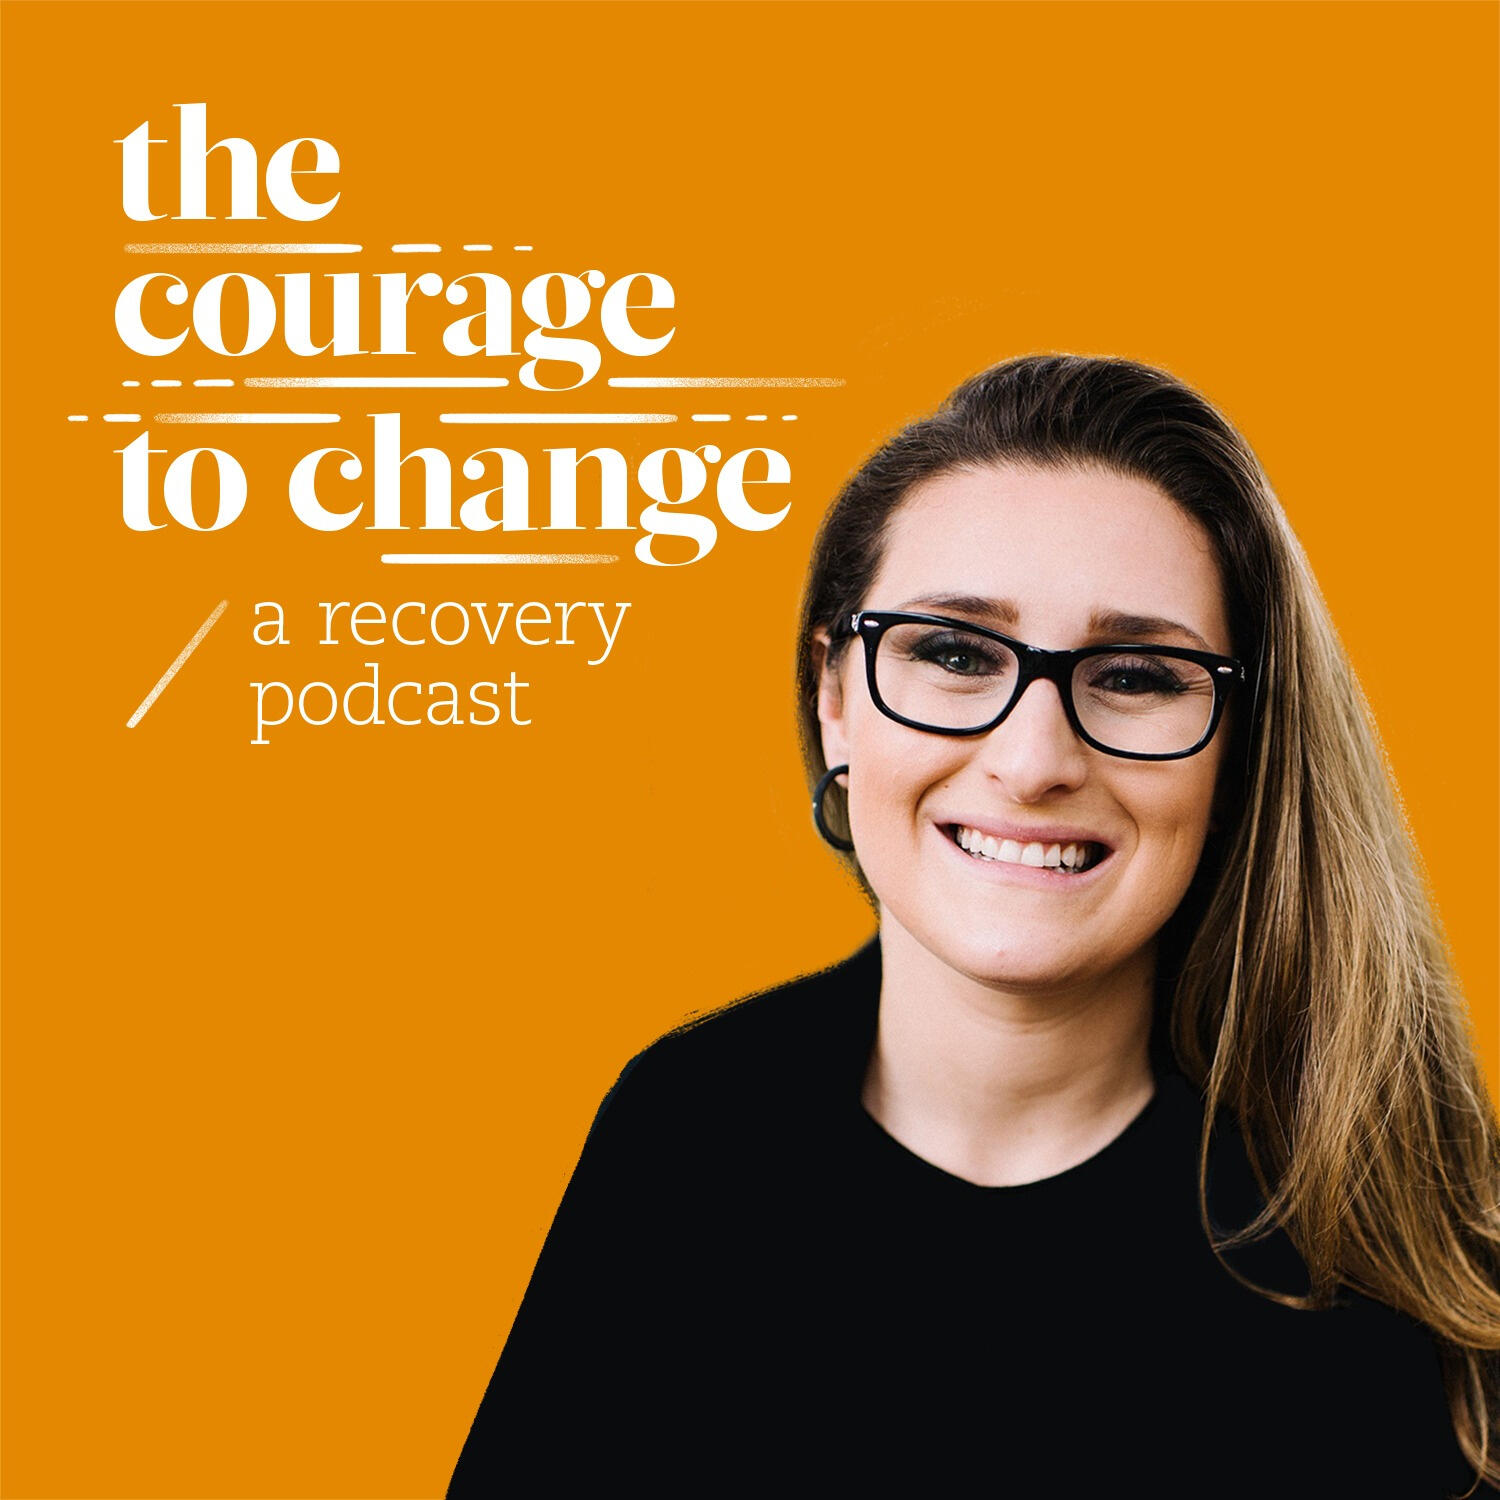 The Courage to Change: A Recovery Podcast